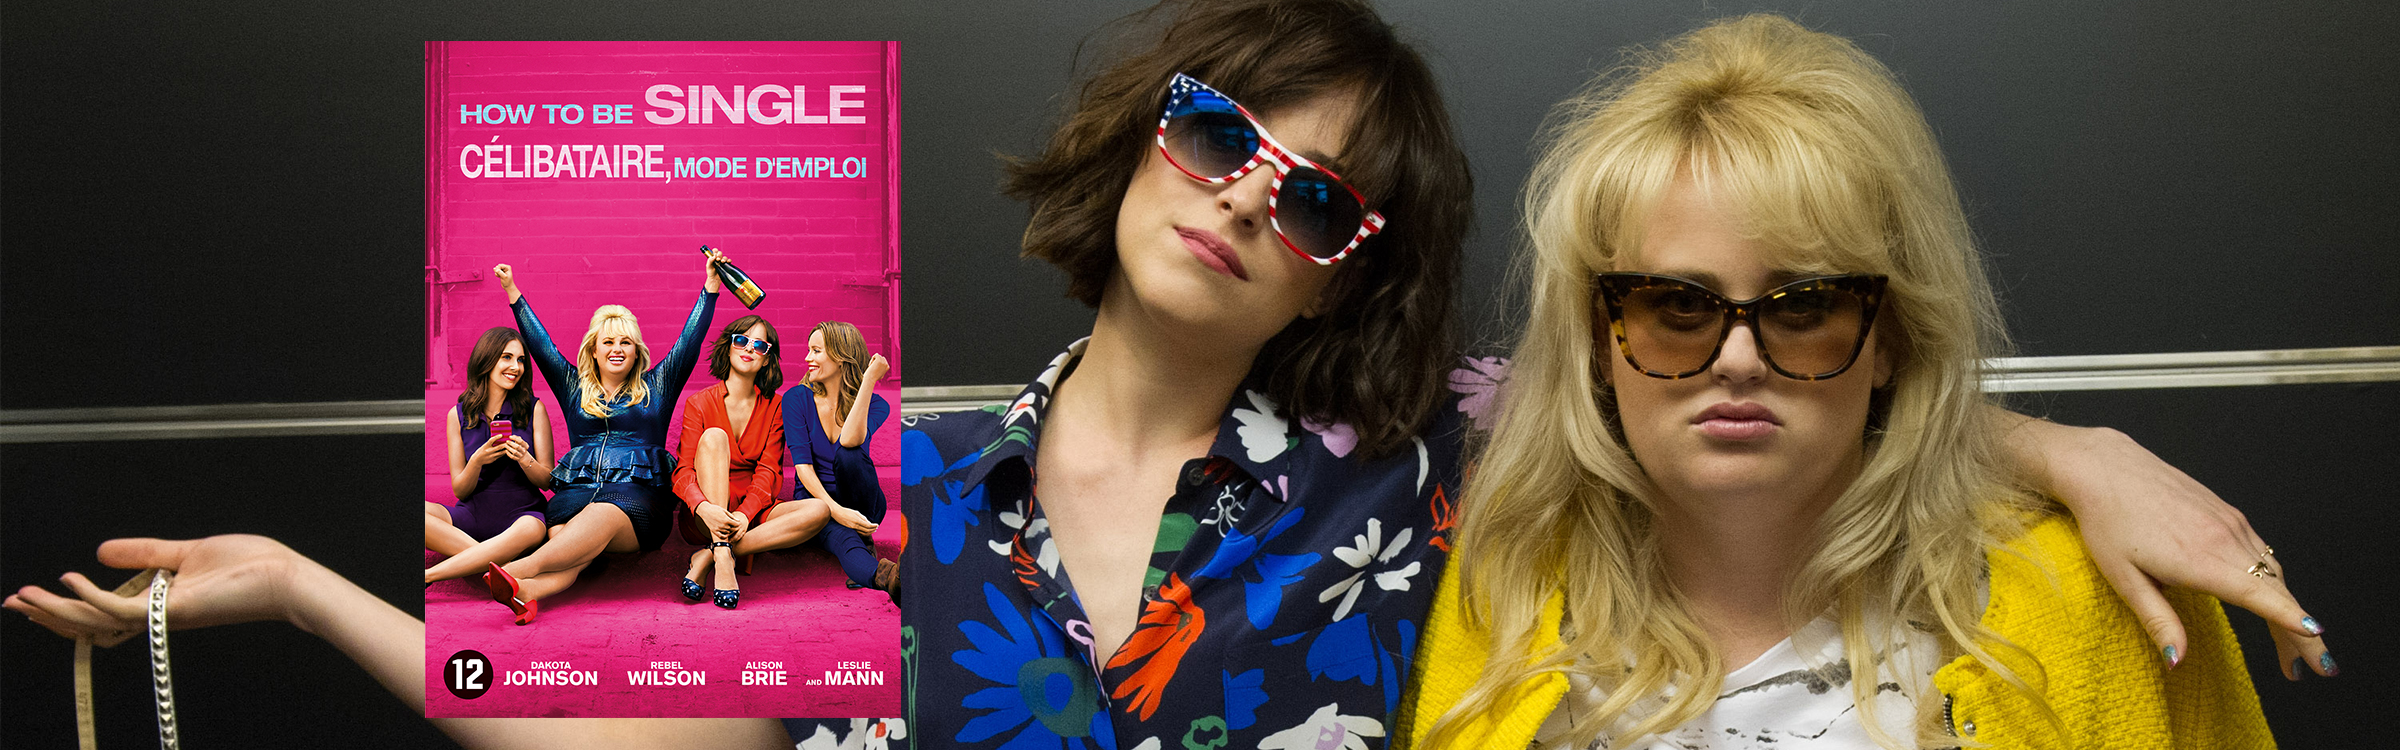 Header dvd howtobesingle